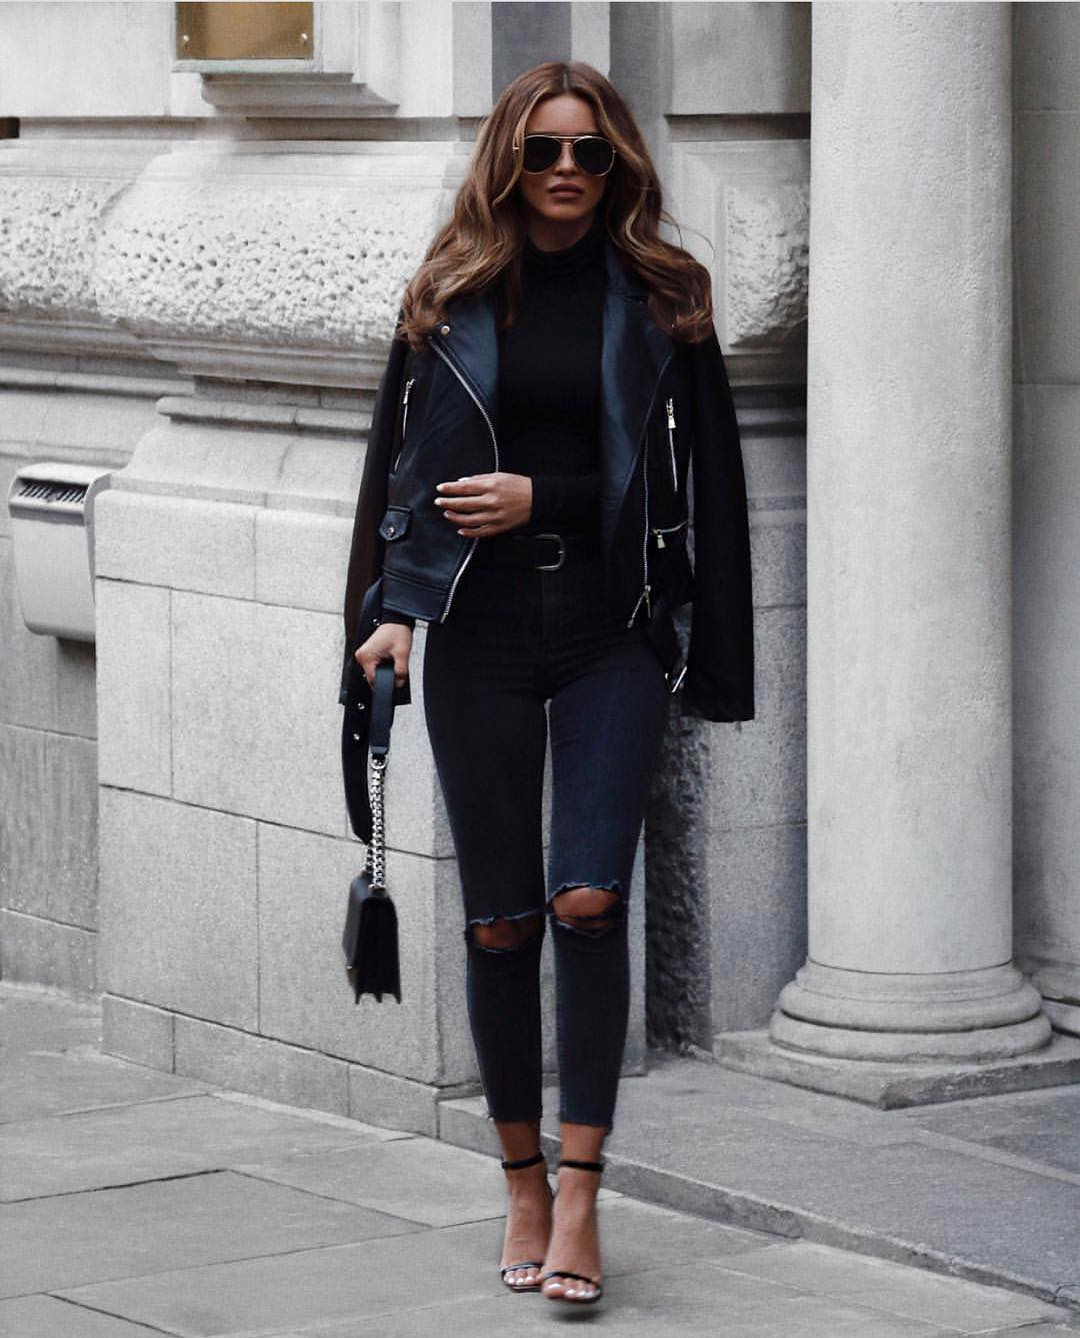 All Black Fall Outfit: Leather Jacket, Black Bodysuit And Skinny Jeans 2020